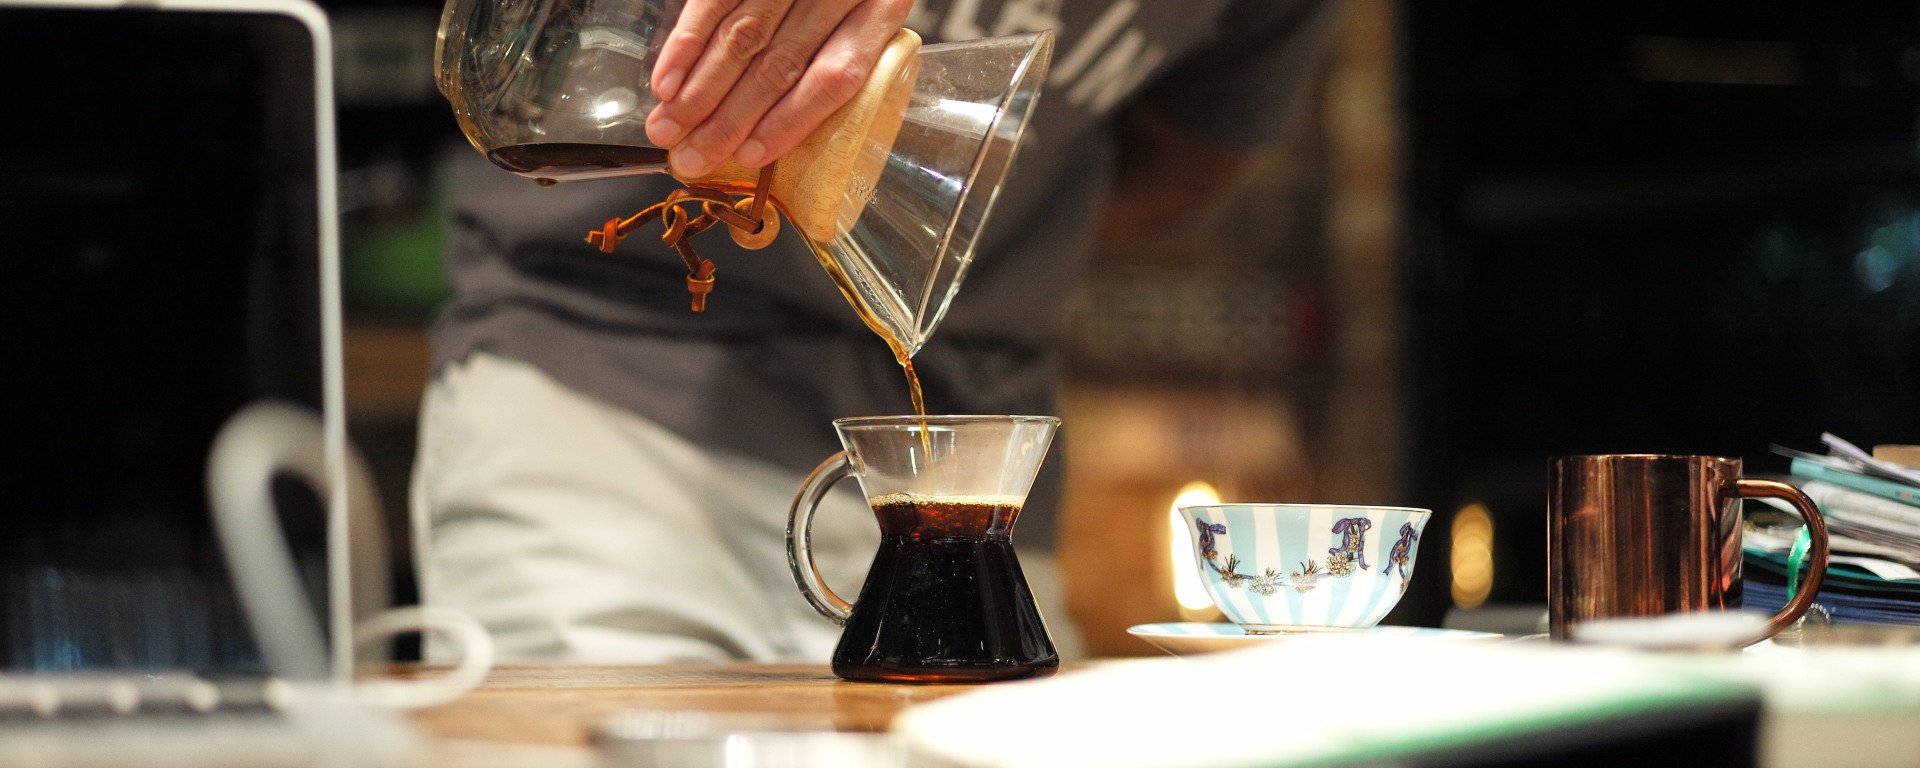 The Journeying Engineer pouring Chemex coffee to a Chemex mug